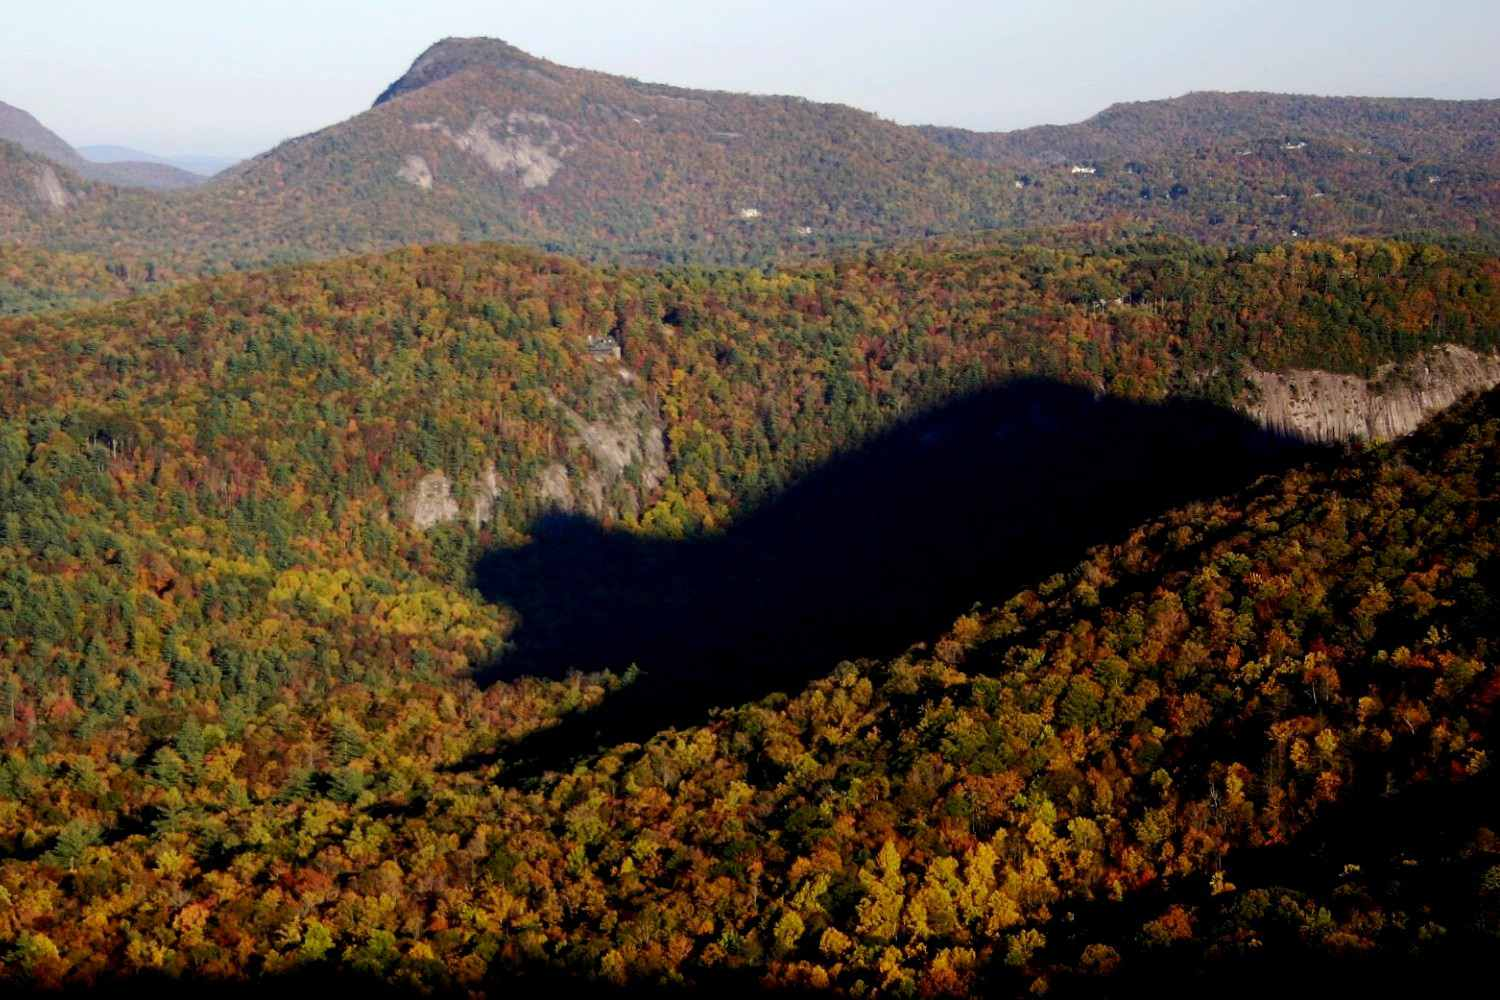 The Shadow of the Bear in the North Carolina Mountains